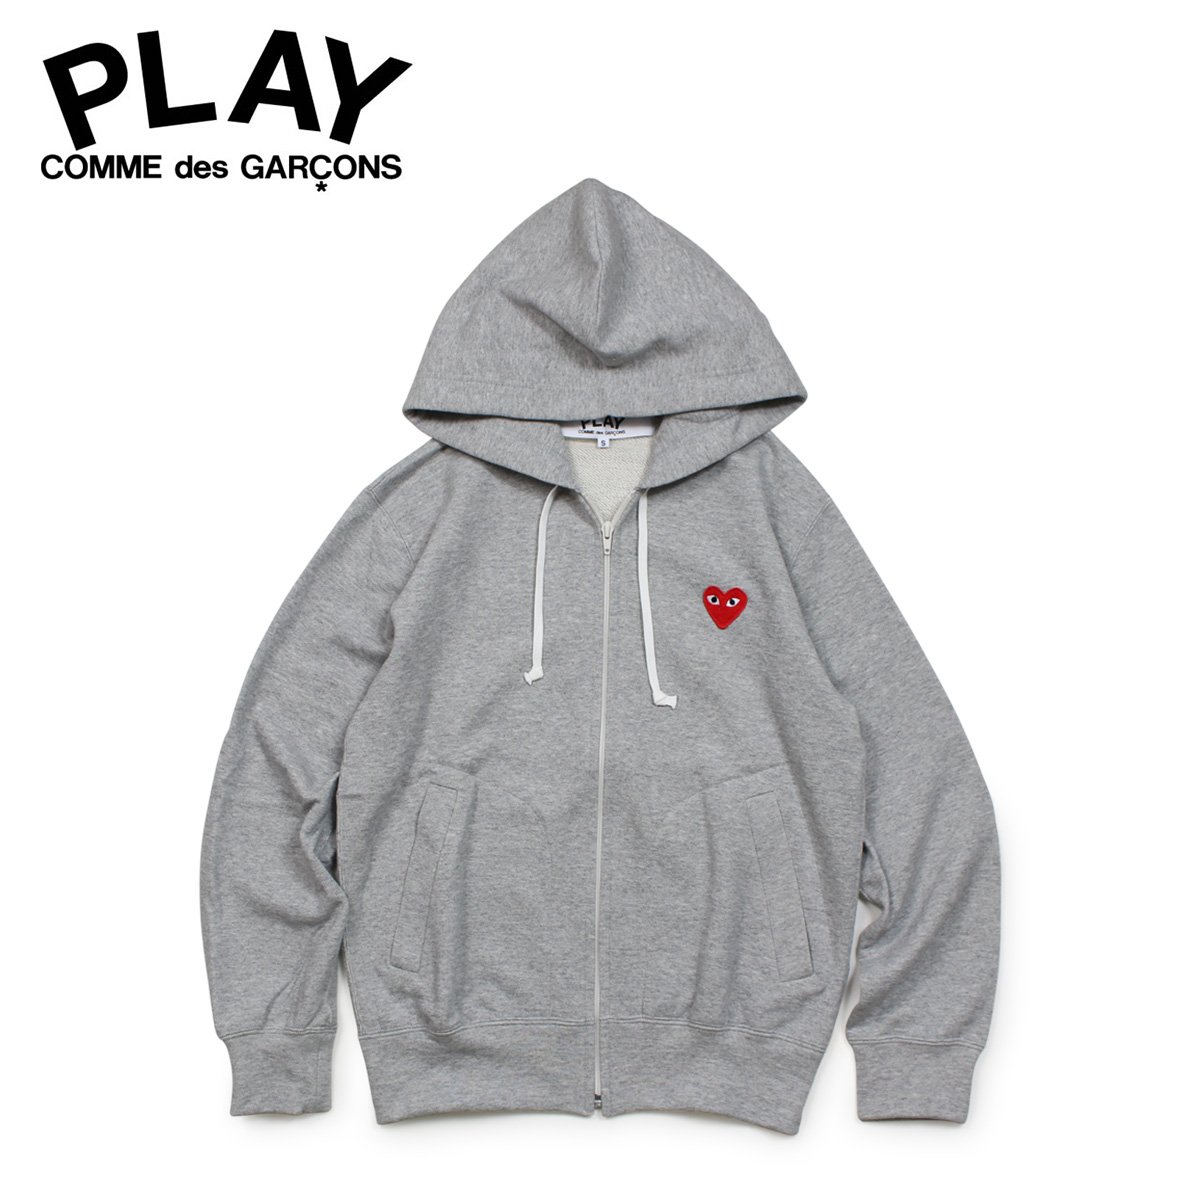 COMME des GARCONS PLAY RED HEART PATCH ZIP HOODED SWEATSHIRT コムデギャルソン パーカー スウェット メンズ ジップアップ グレー P1T168 AZ-T168